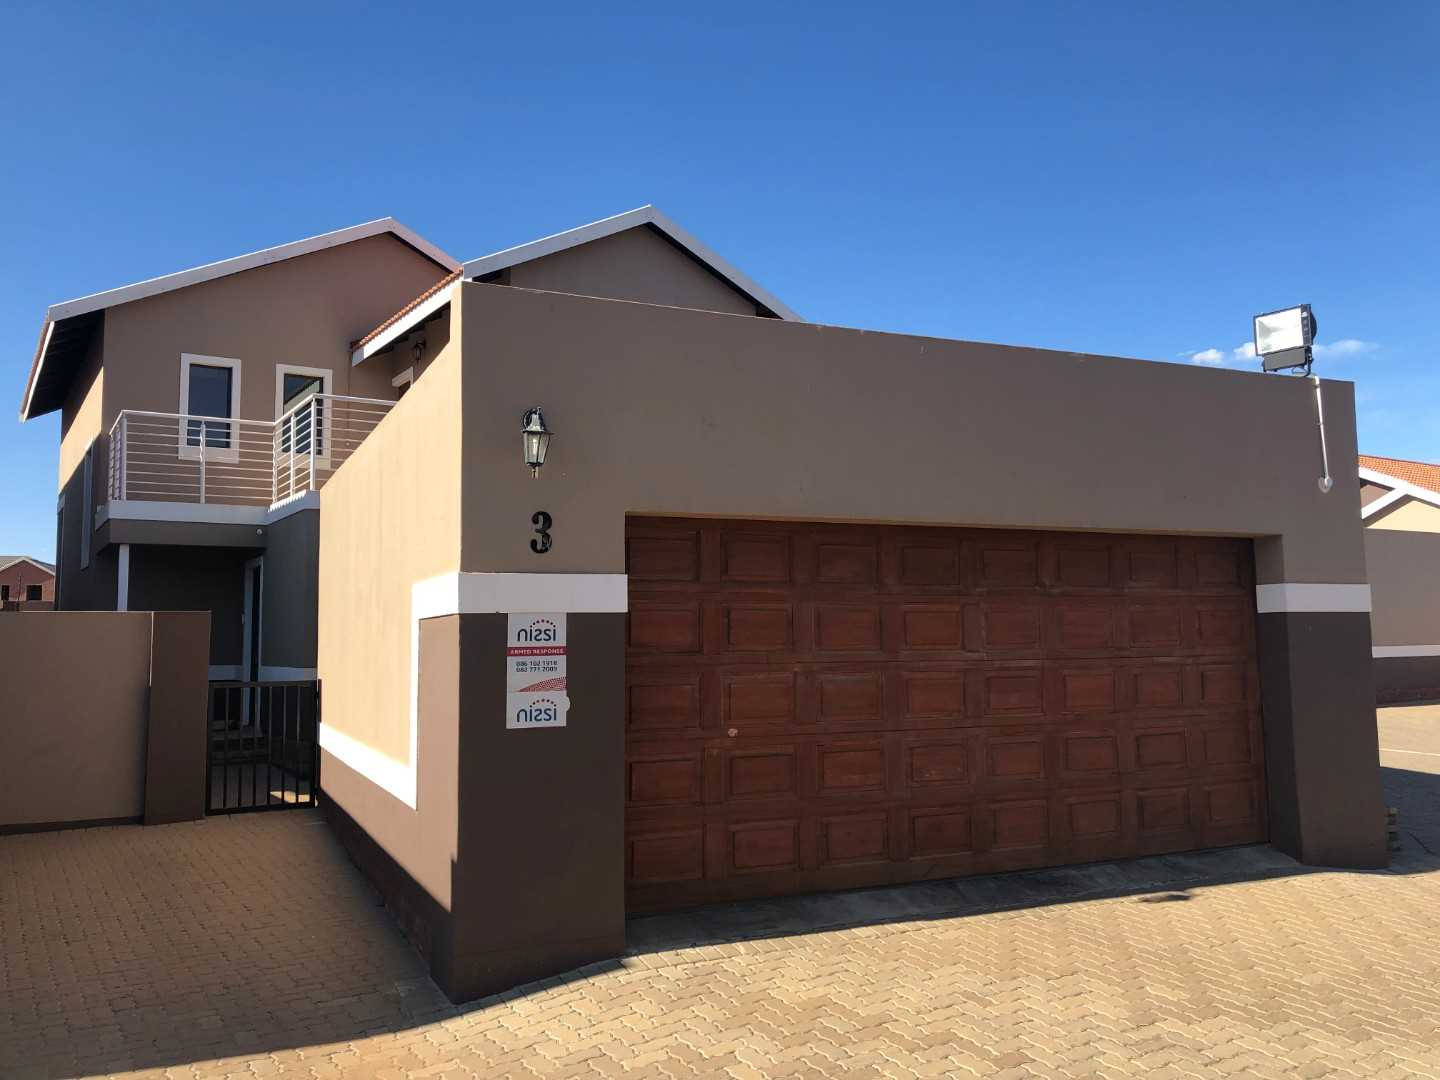 3 Bedroom unit with 3 bathrooms open plan living rooms with kitchen and double garage - spacious garden